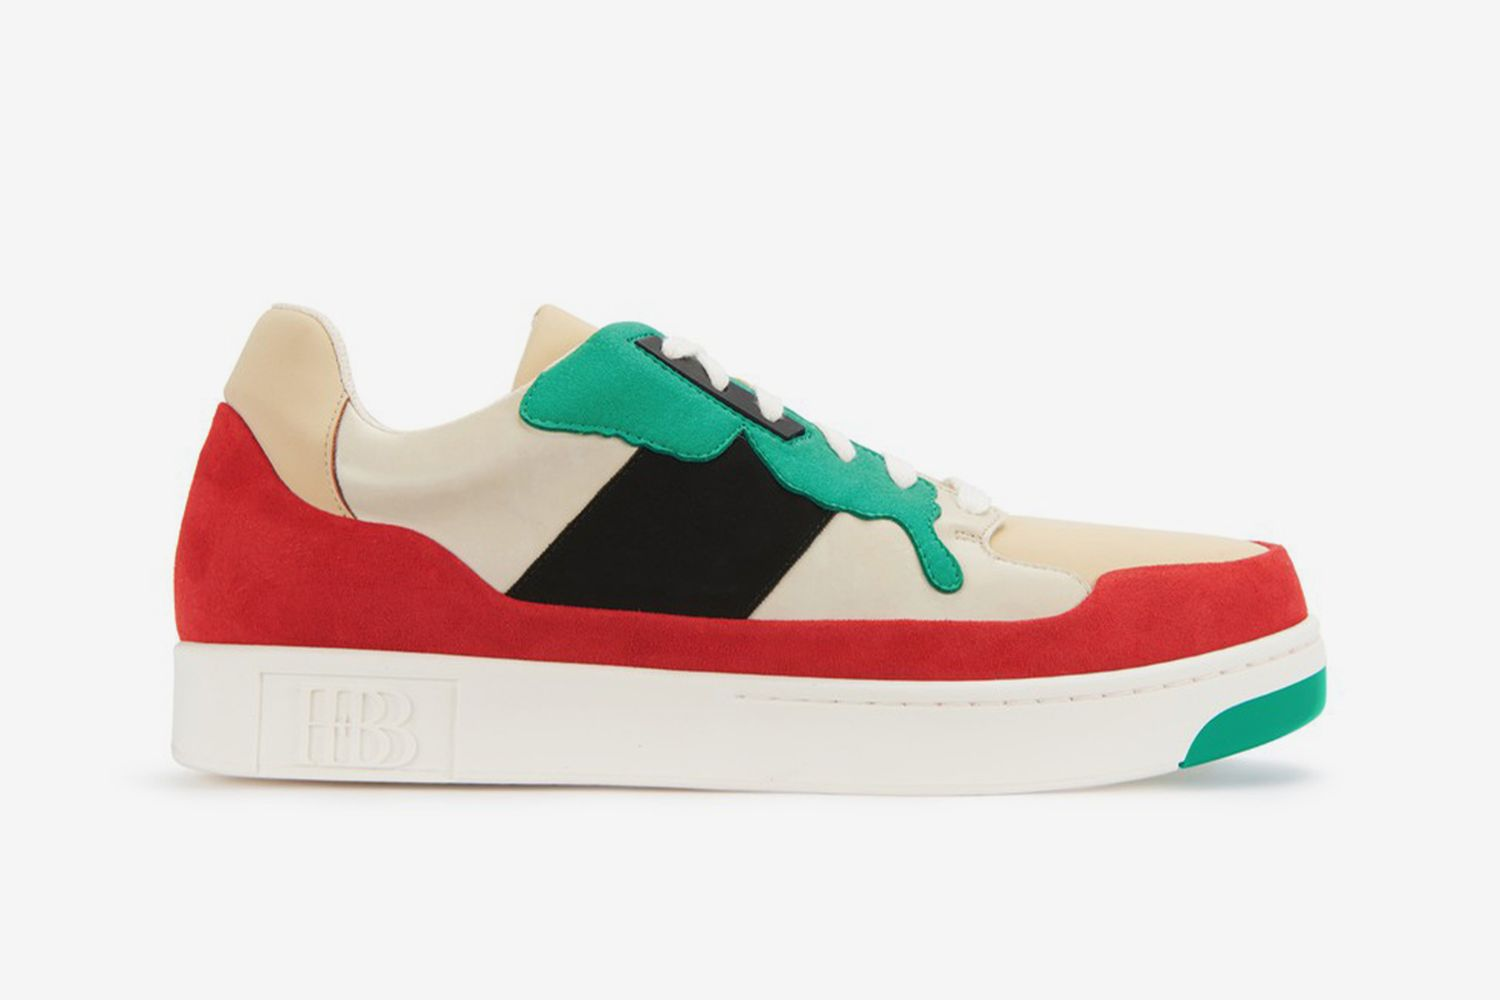 Swallowtail Low Peacock Sneakers